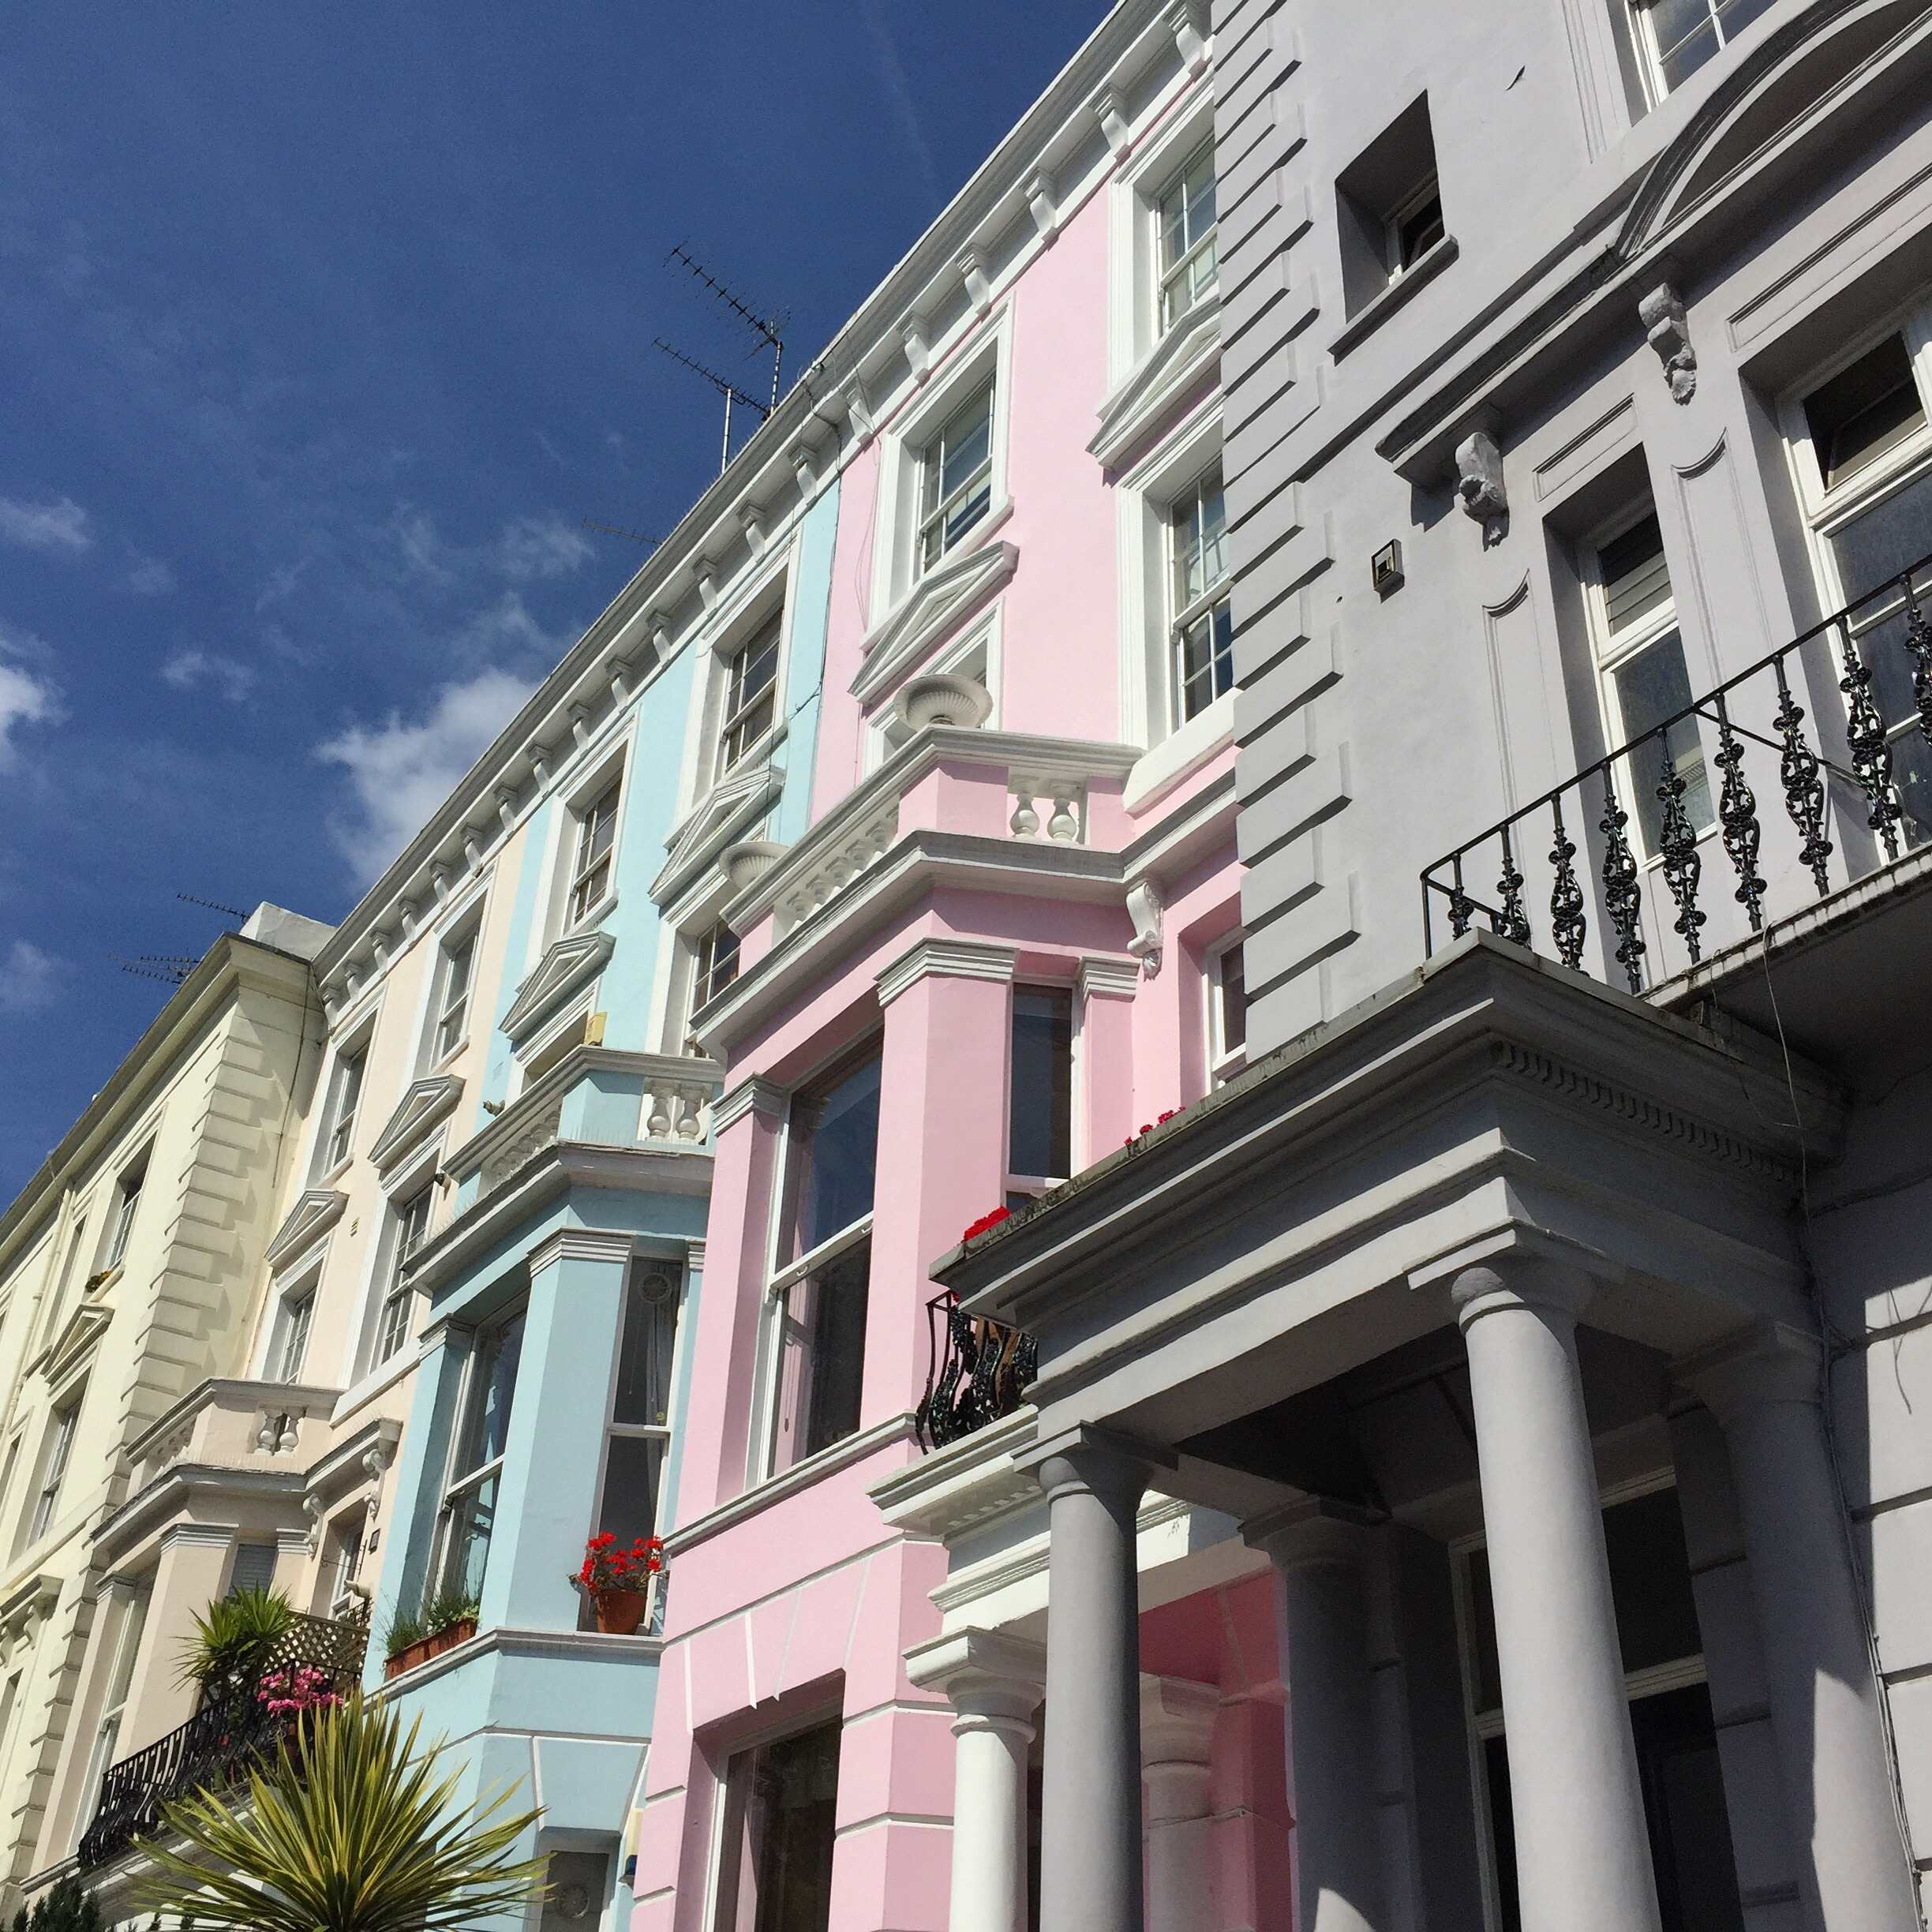 The lovely Notting Hill